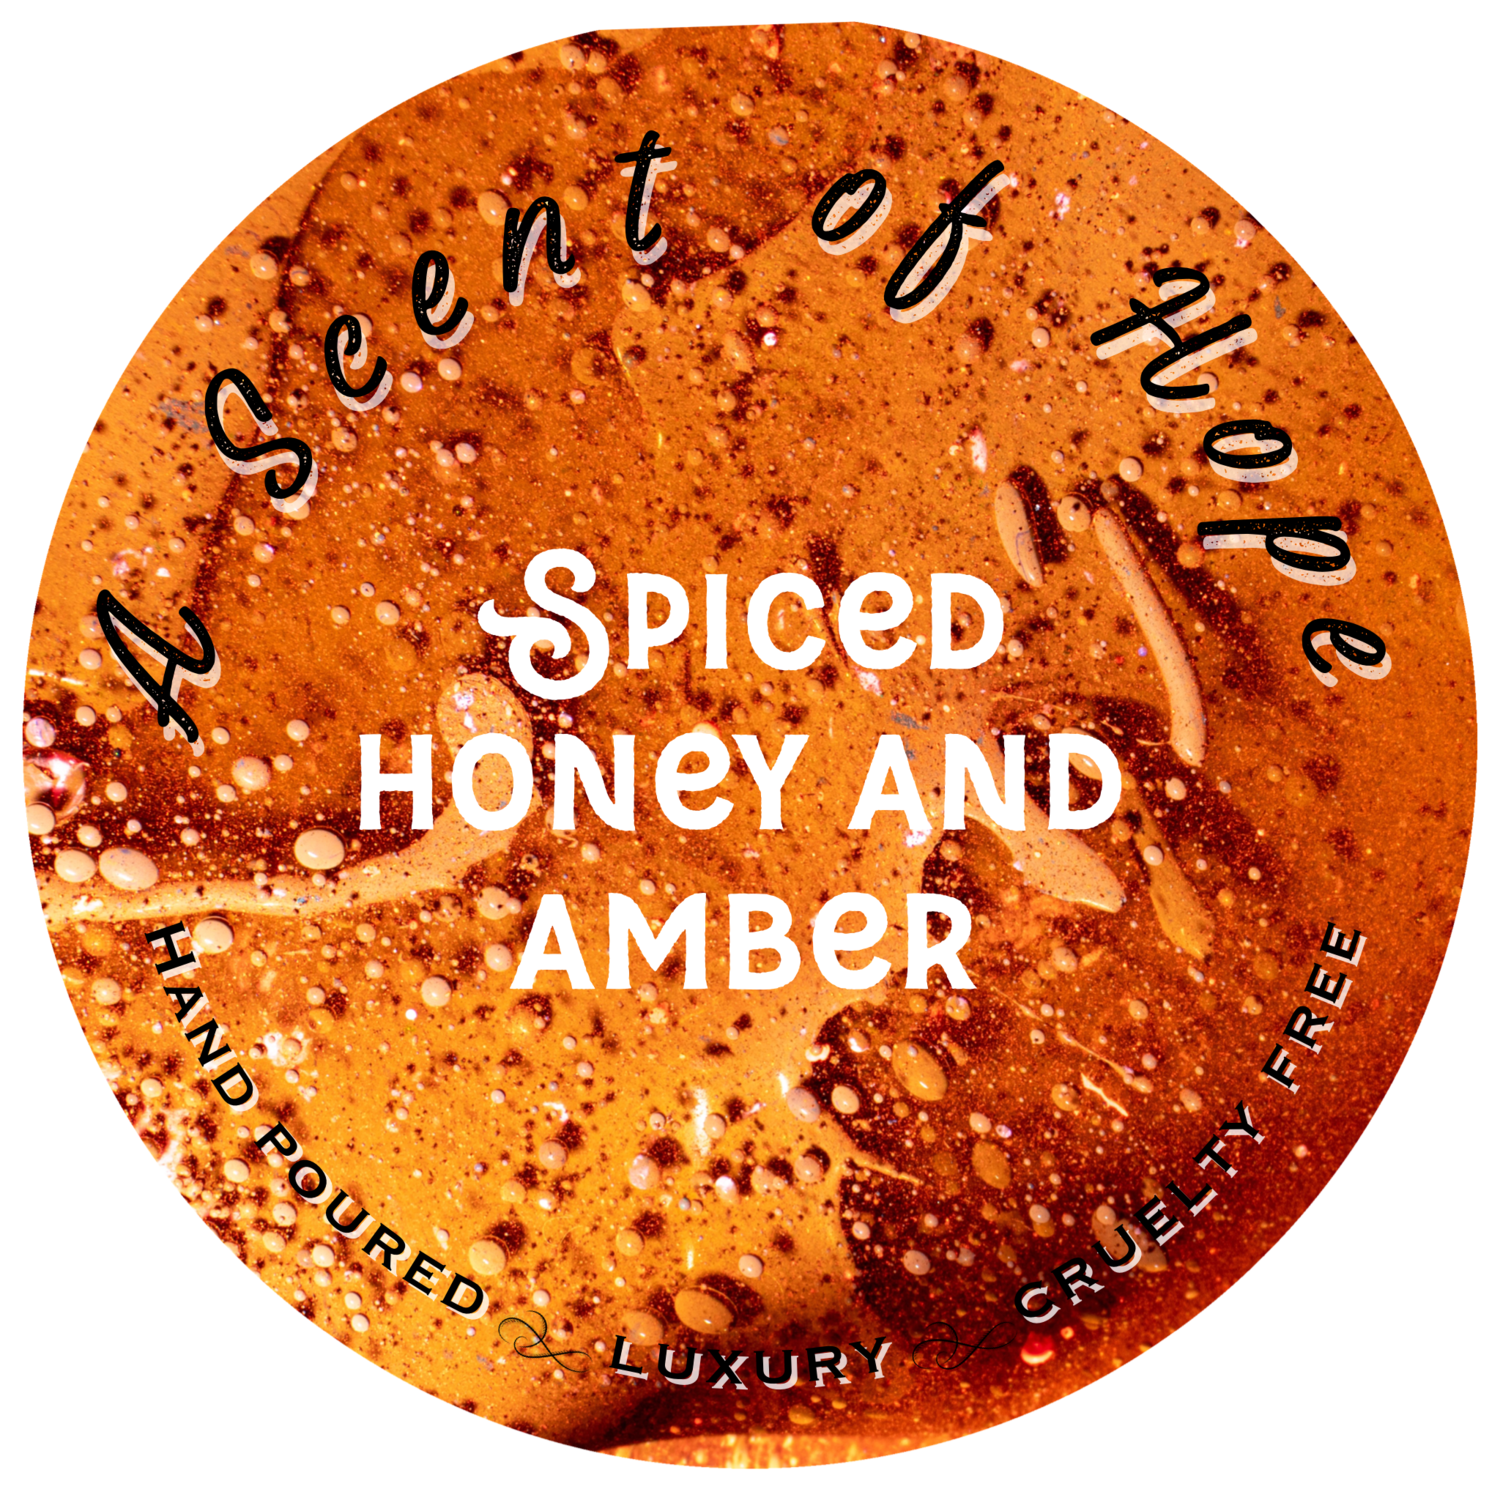 Spiced Honey and Amber